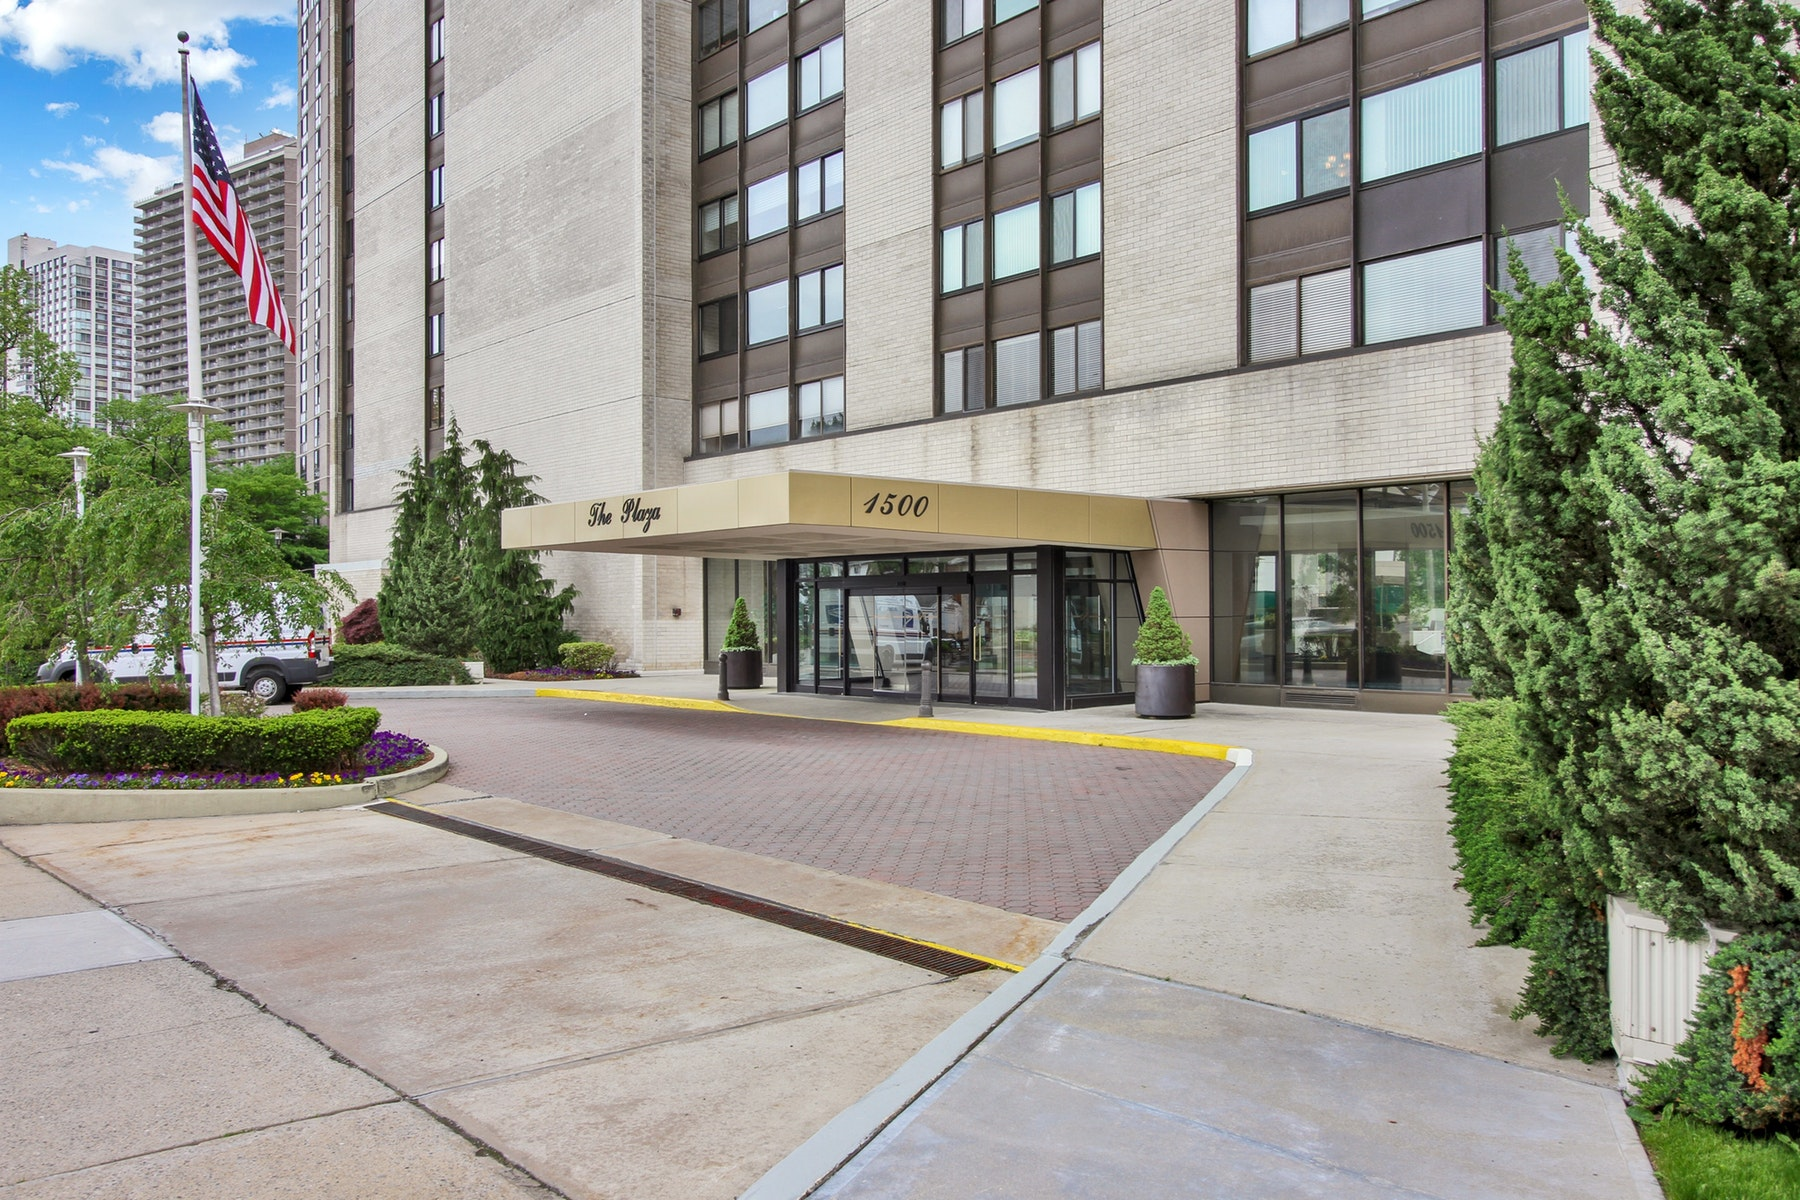 Co-op for Sale at 1500 Palisade Avenue, #16A 1500 Palisade Avenue, #16A Fort Lee, New Jersey 07024 United States